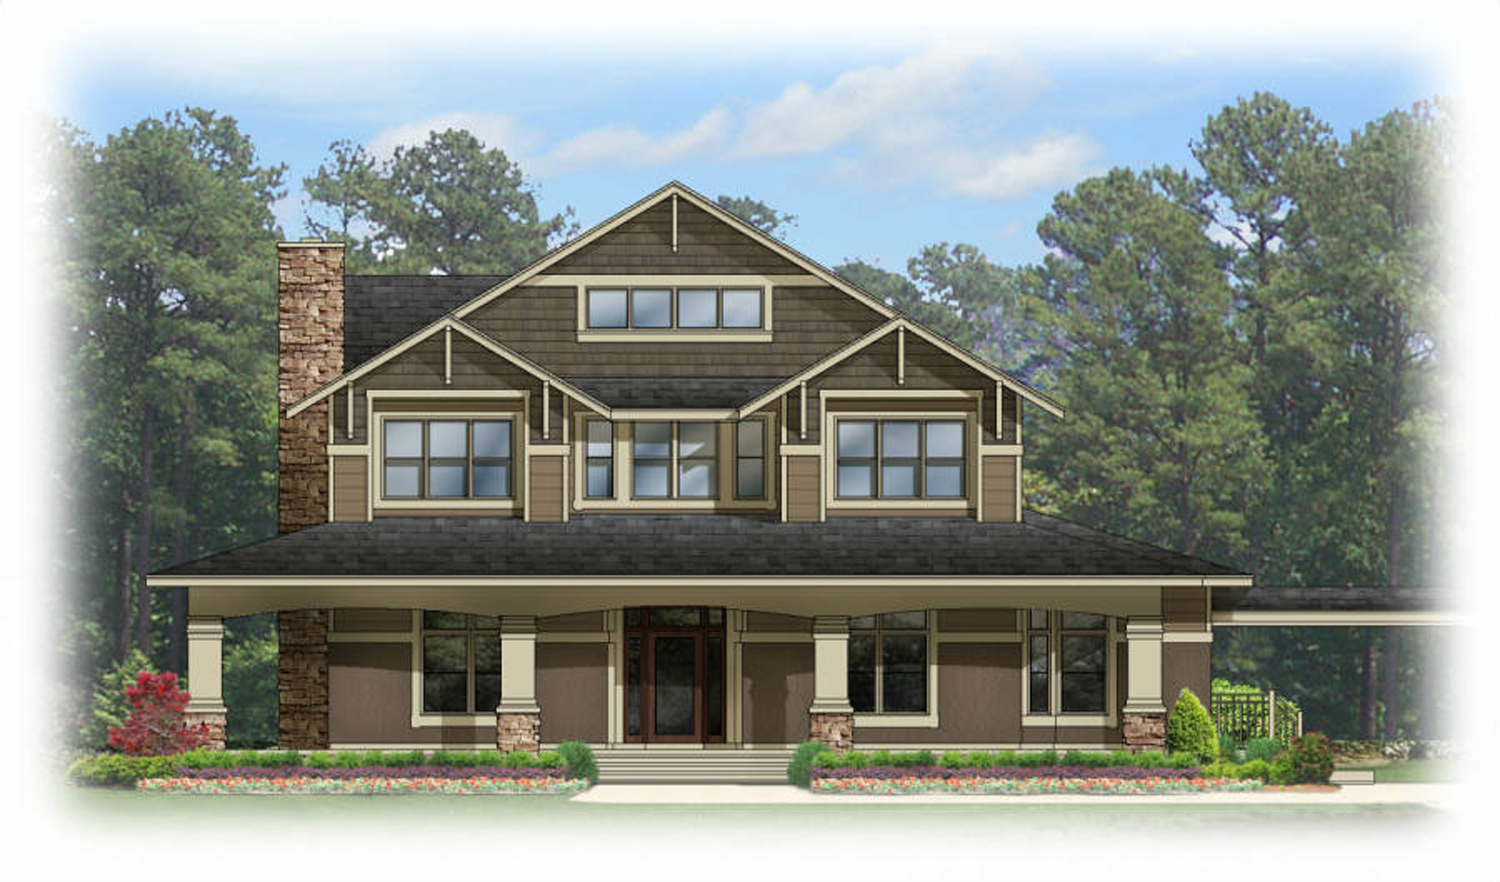 Craftsman house plan with wrap around porch 82070ka for Craftsman wrap around porch